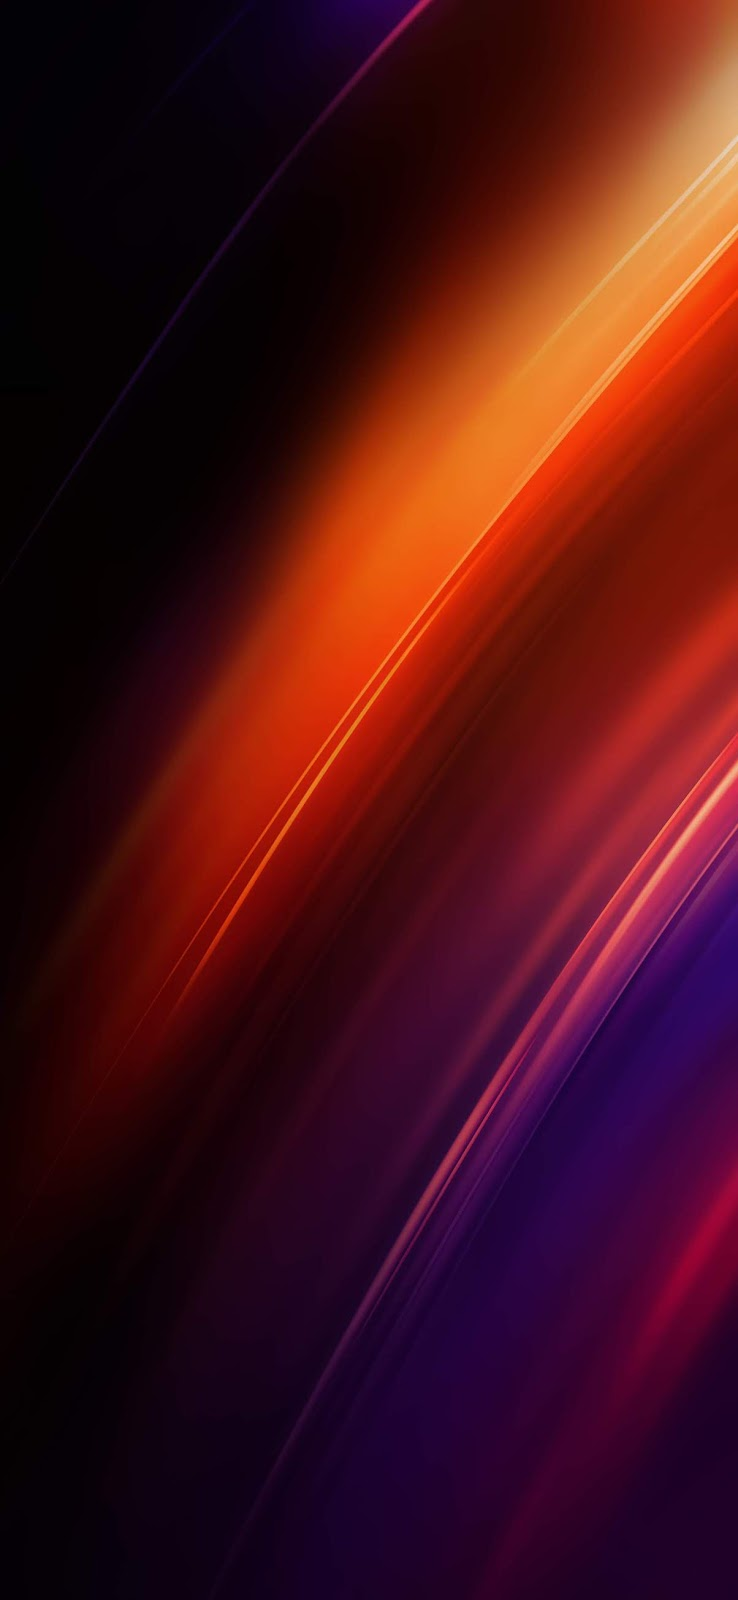 OnePlus 7T McLaren edition Stock Wallpapers (6 pics)